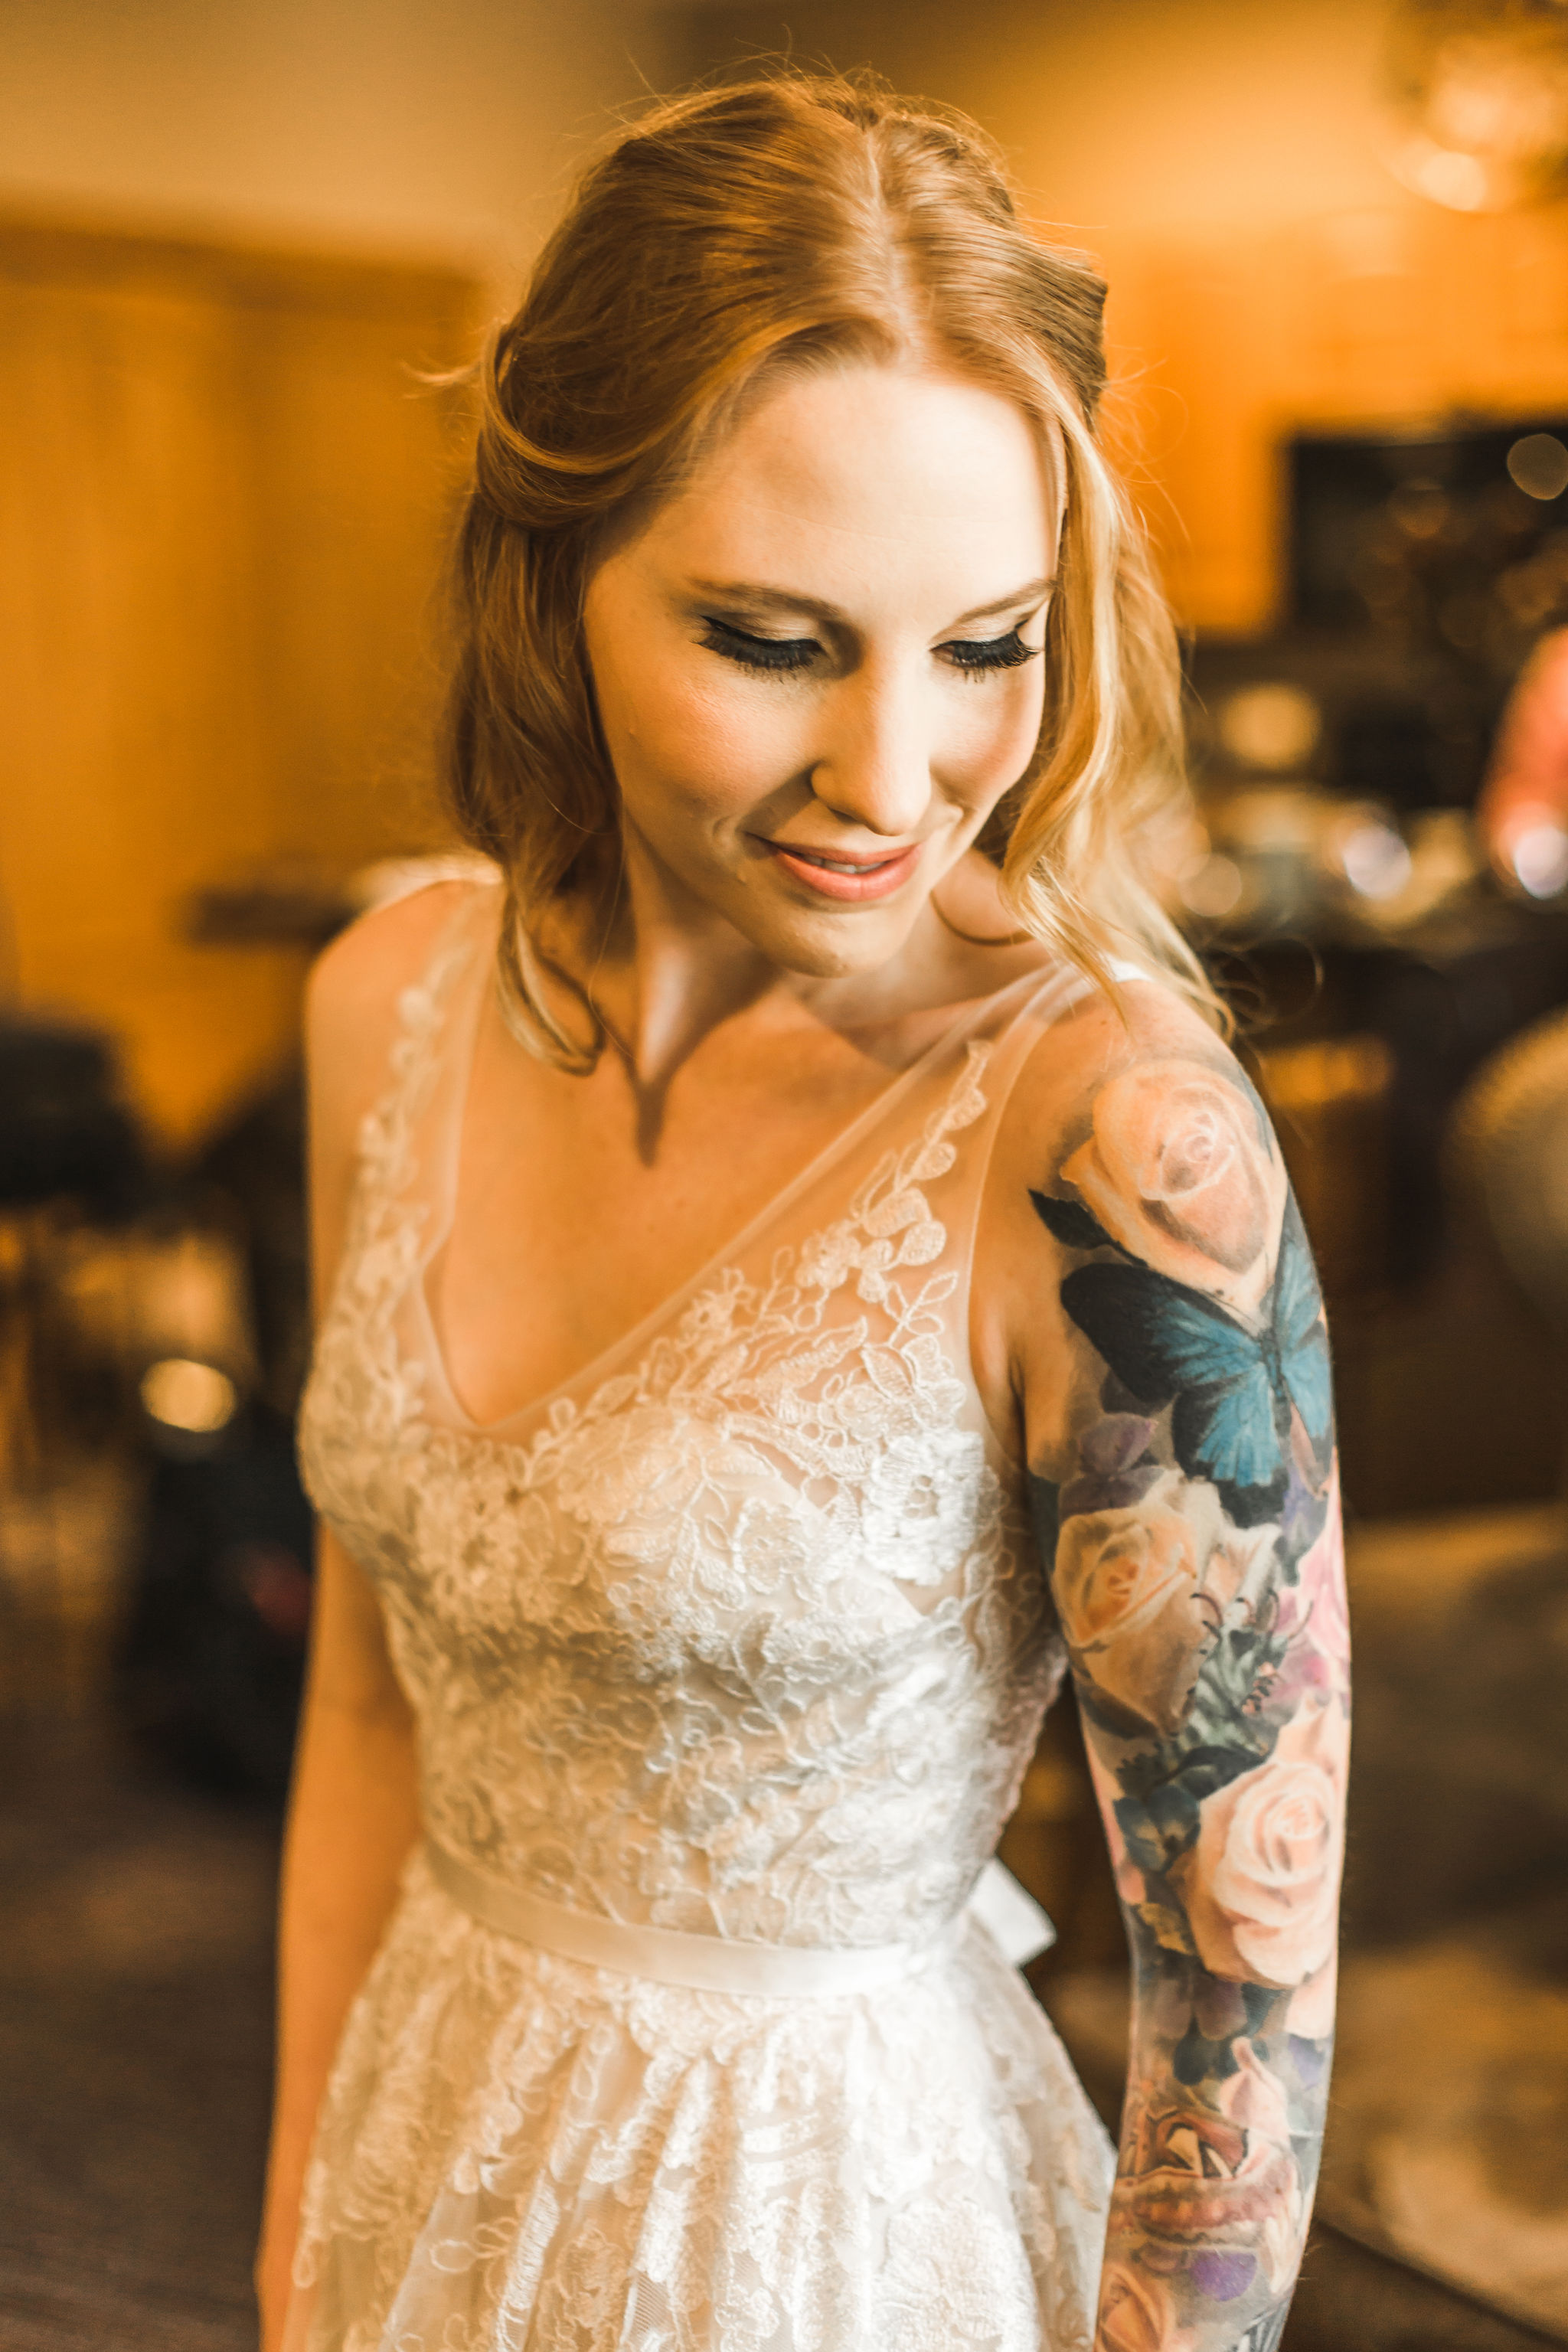 Bride with tattoos lace wedding dress